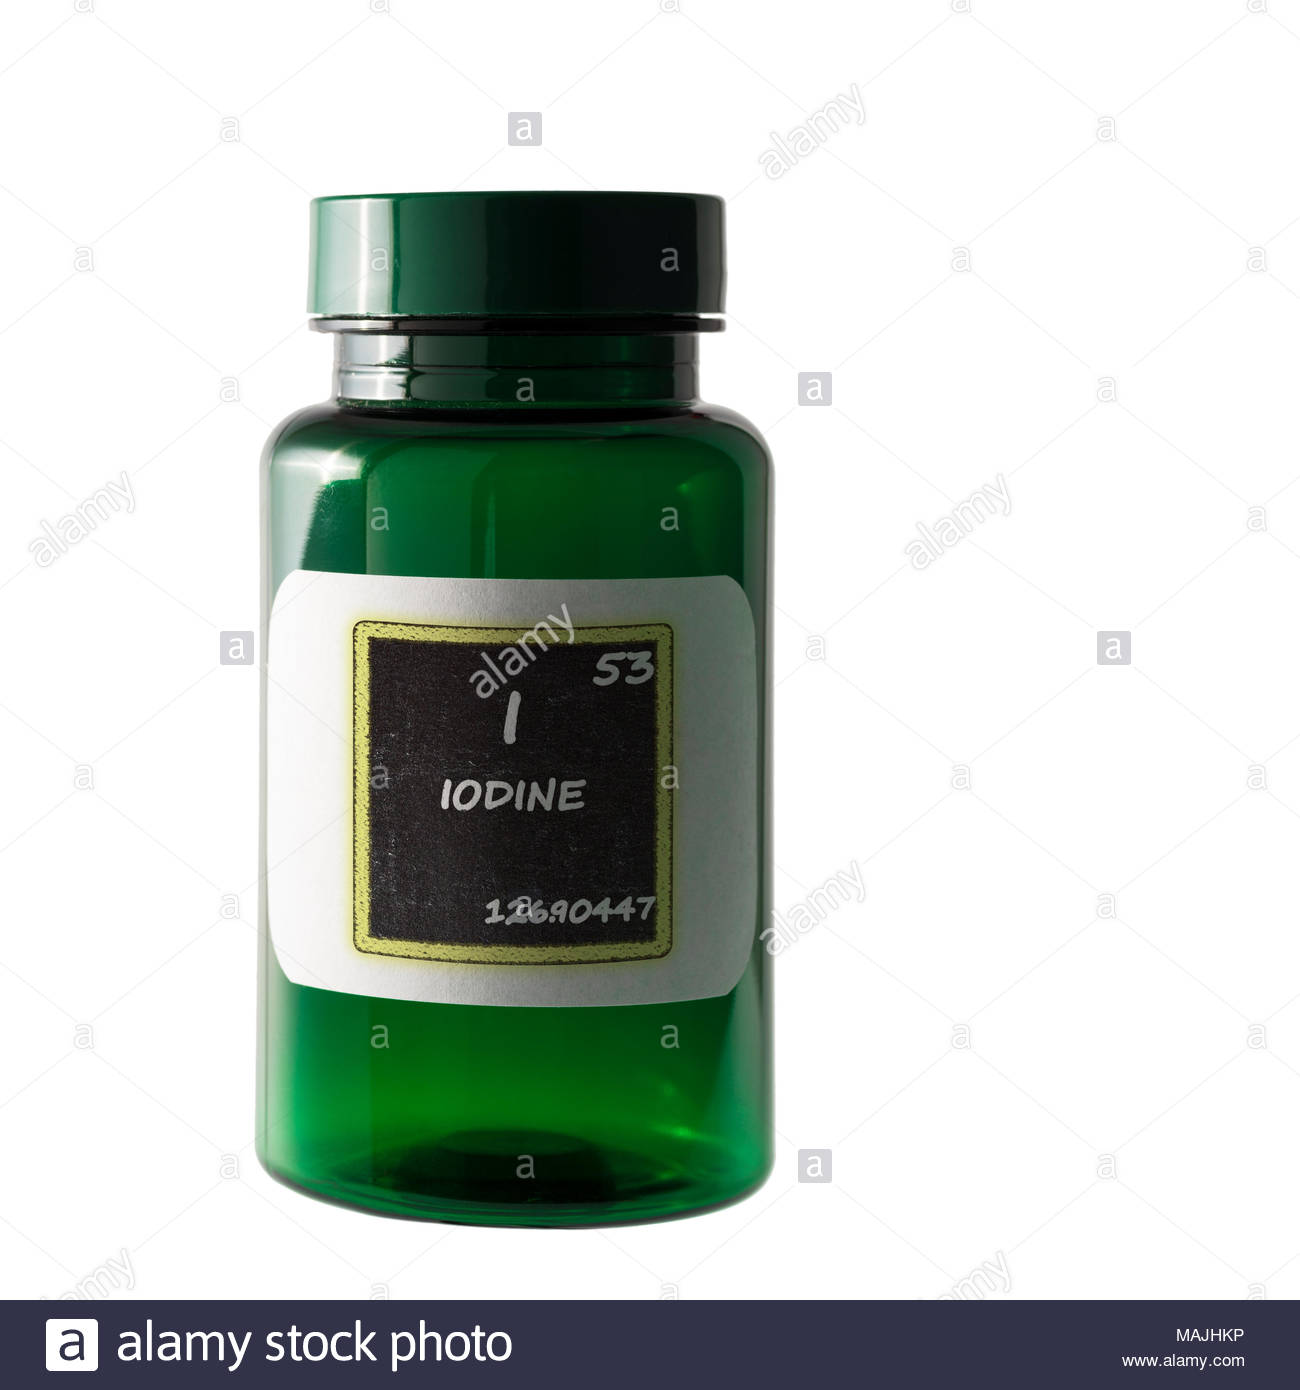 Iodine Periodic Table Details Shown On Bottle Label Stock Photo